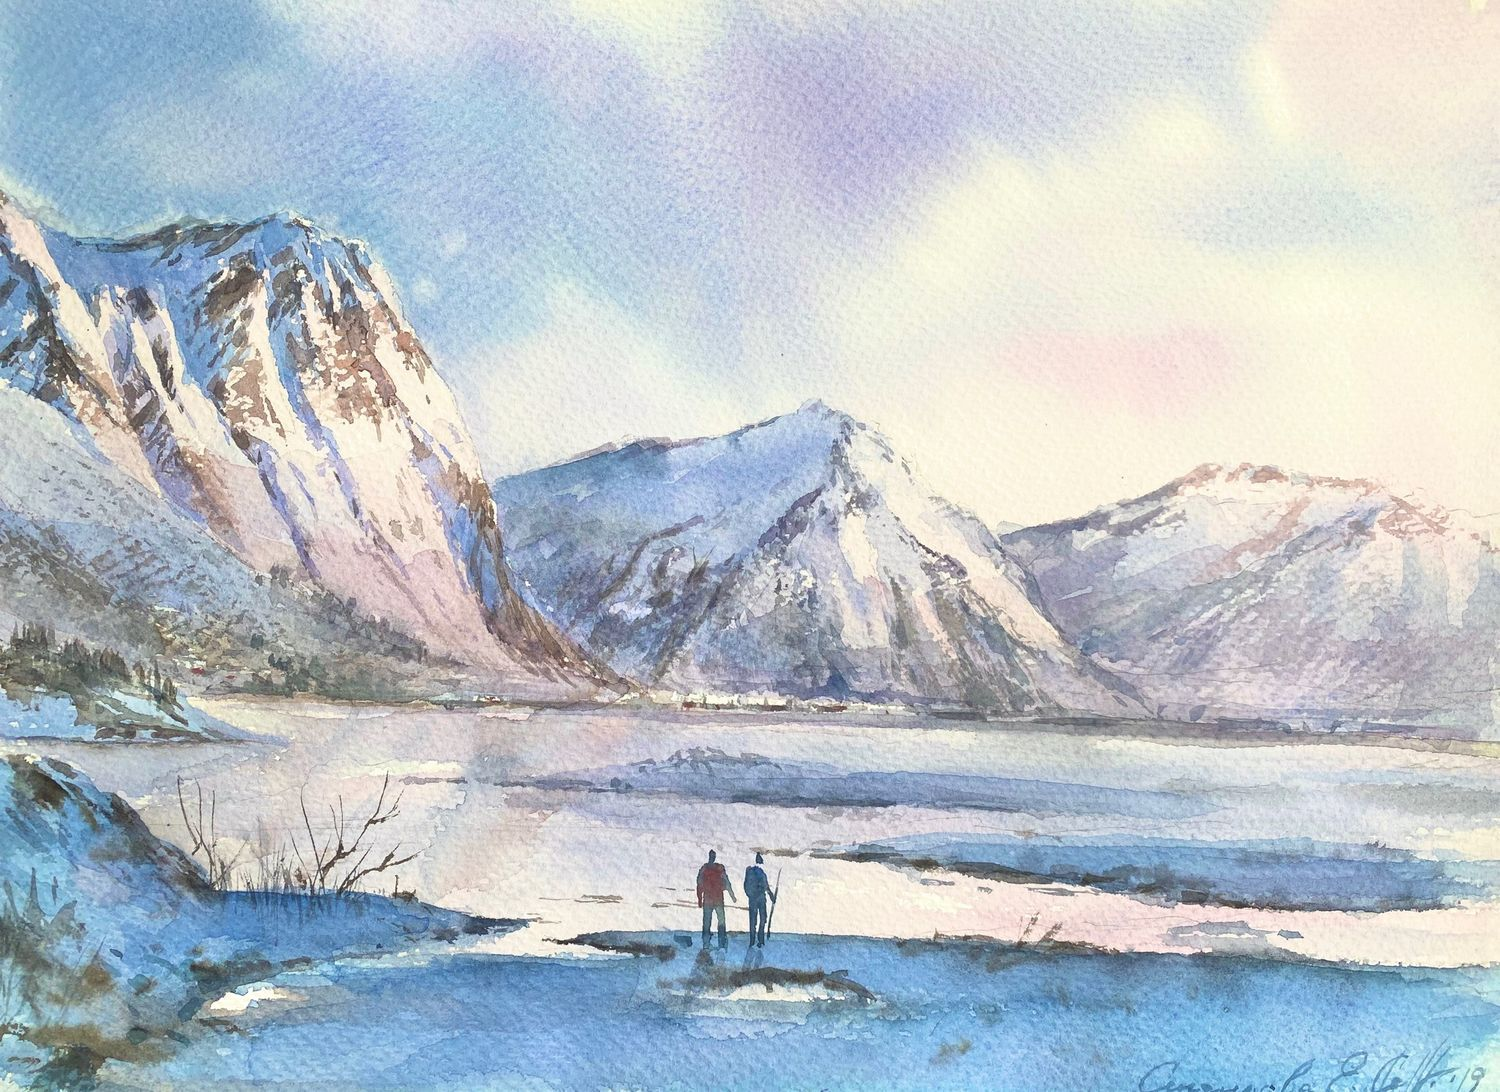 Painting of the mountain 'Norwegian fjords' watercolor, Pictures, Moscow,  Фото №1